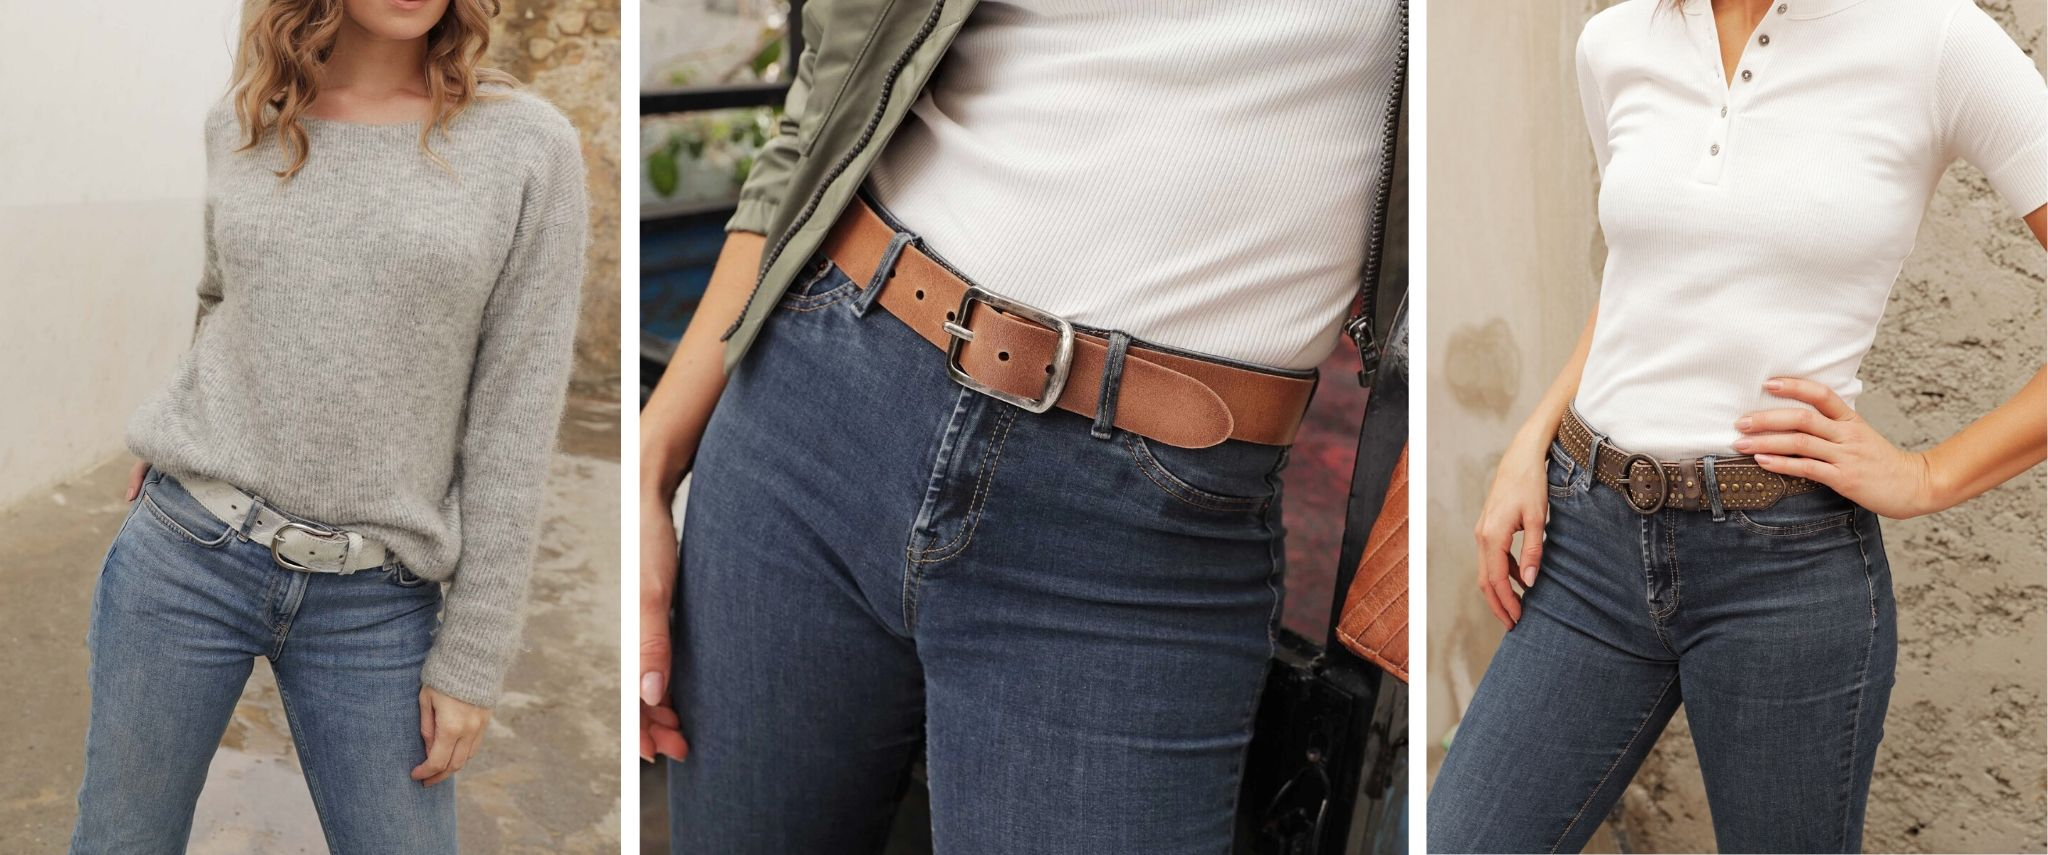 women wearing leather belts